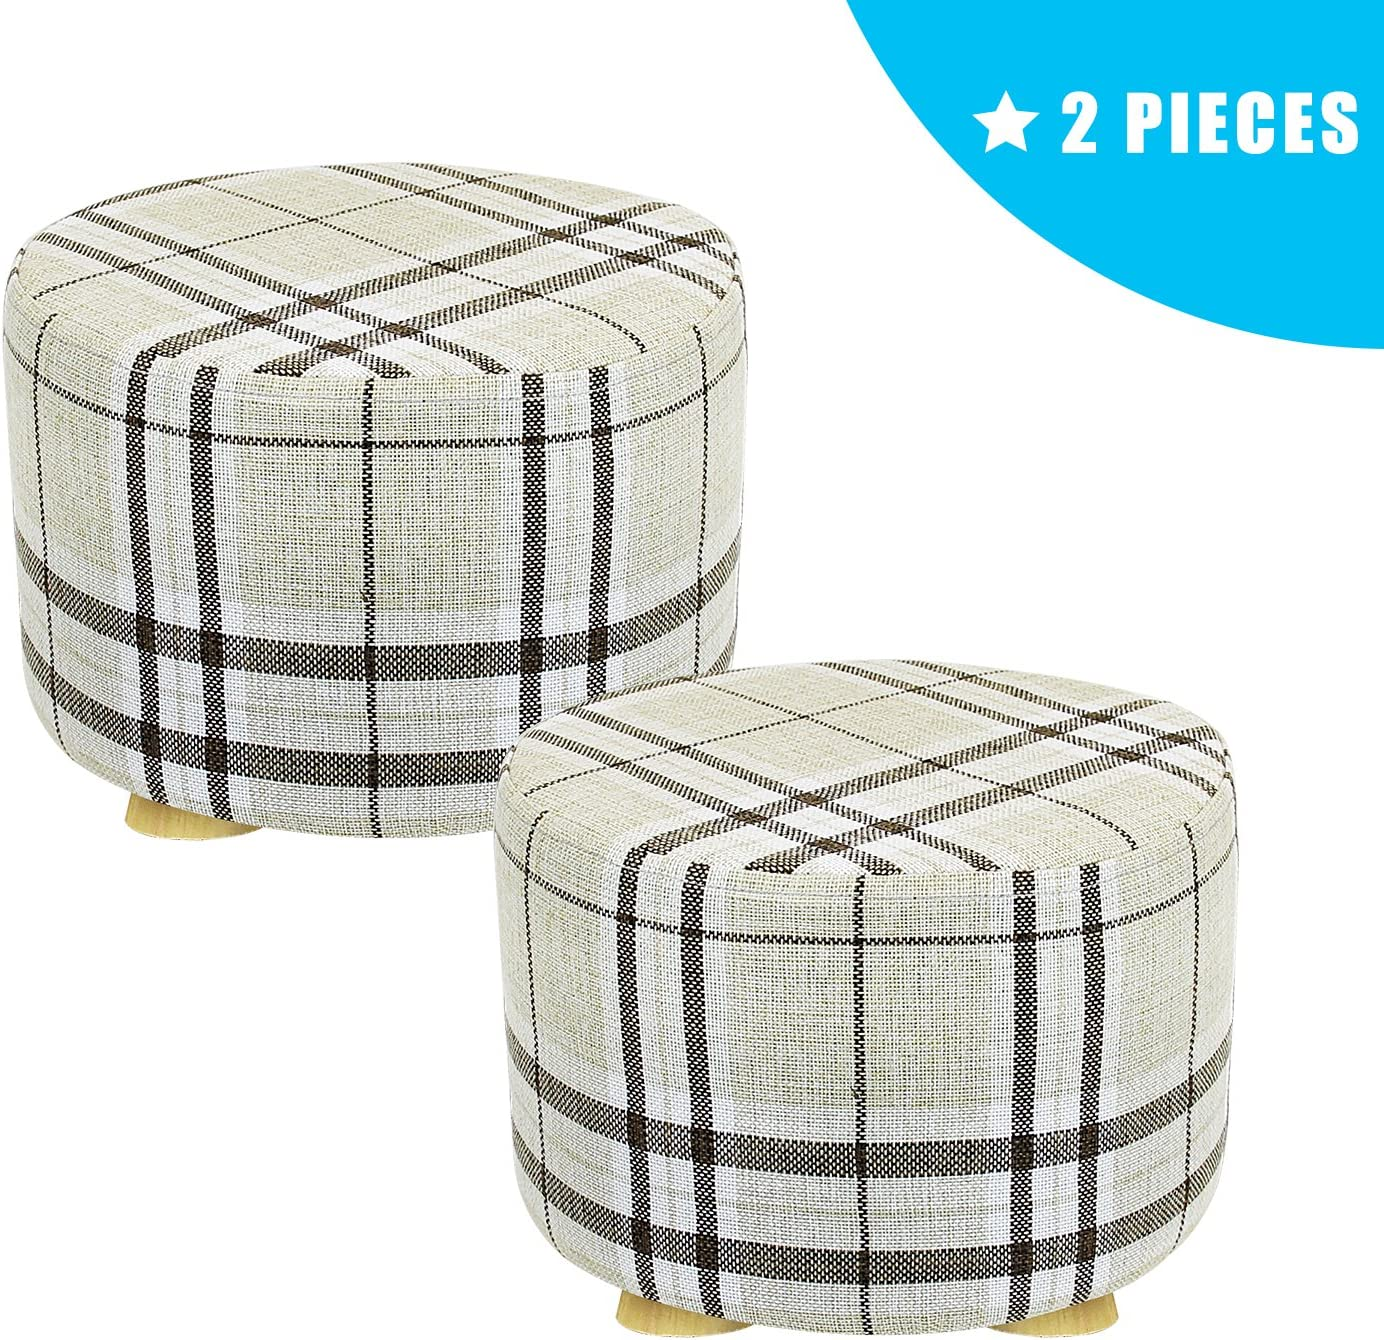 Cubic 2 Pieces Footstool Fabric Ottomans Bench Seat Foot Rest Step Stool Feet Protection Design 4 Leg Beige Jerry /& Maggie